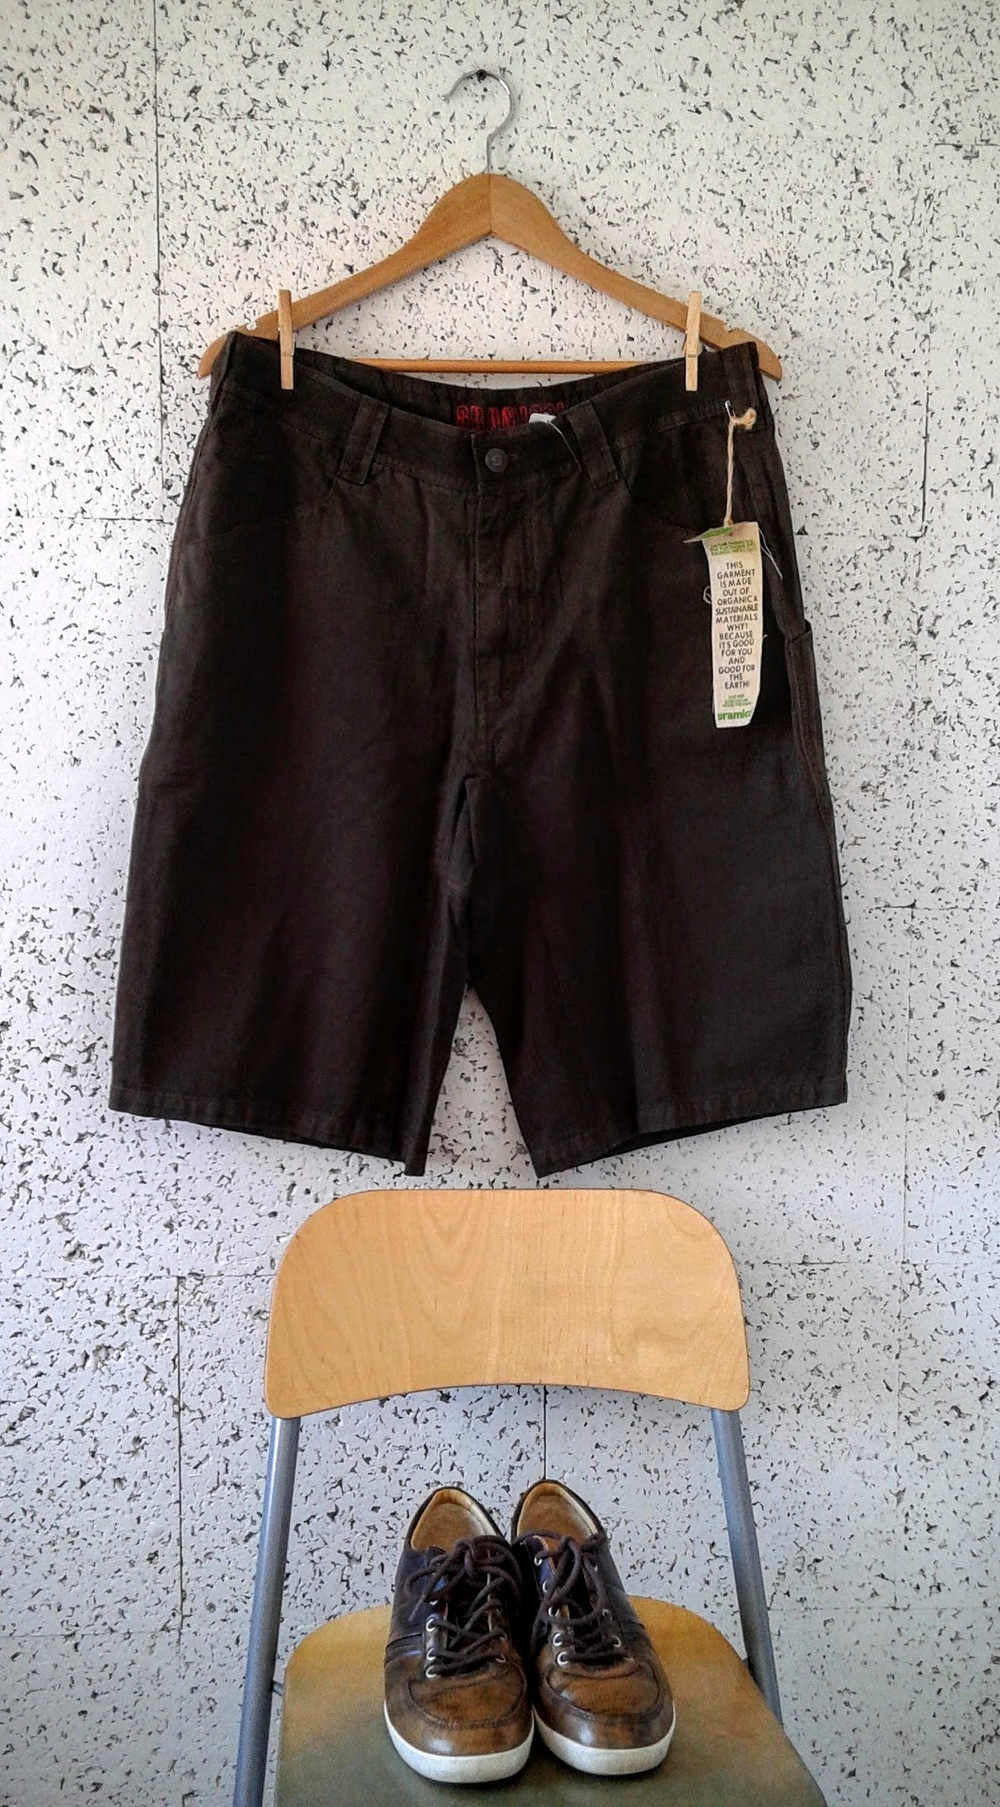 Gramicci  shorts (NWT), Size 34, $28;  Ugg  shoes, S8, $48